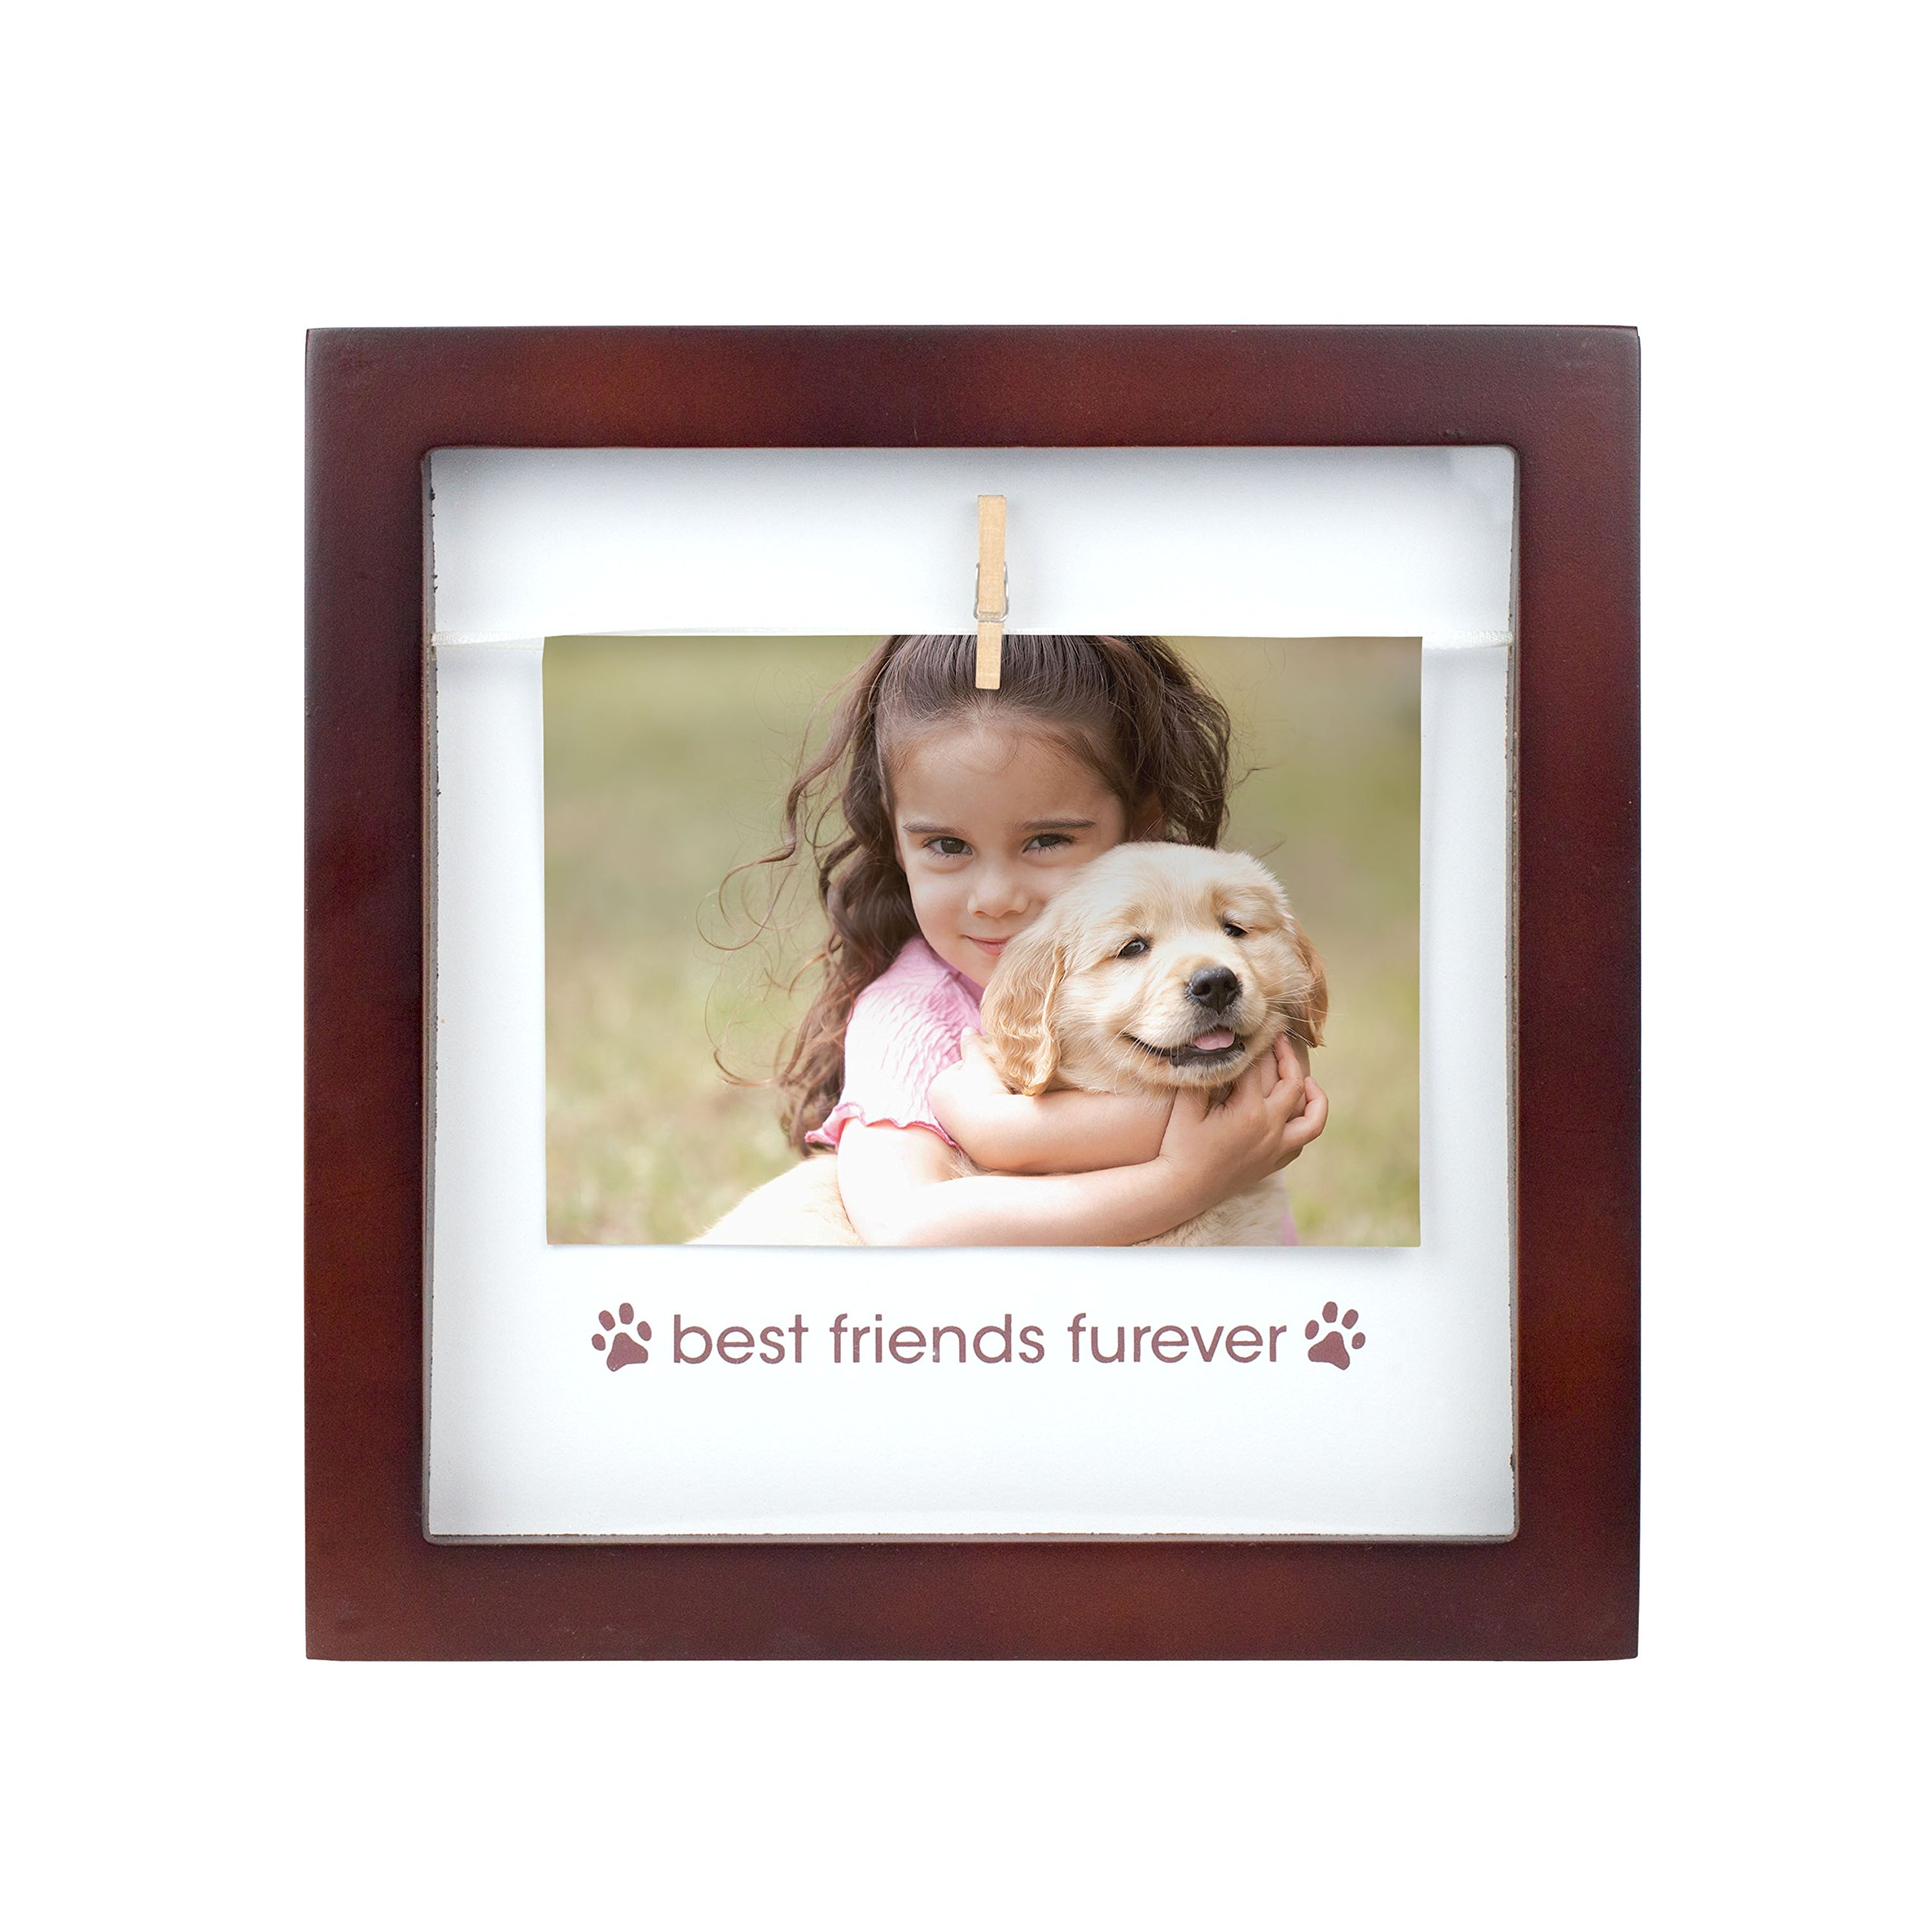 Pearhead Pet Best Friends Furever Clothespin Photo Frame, Perfect Keepsake Gift for Pet Lovers